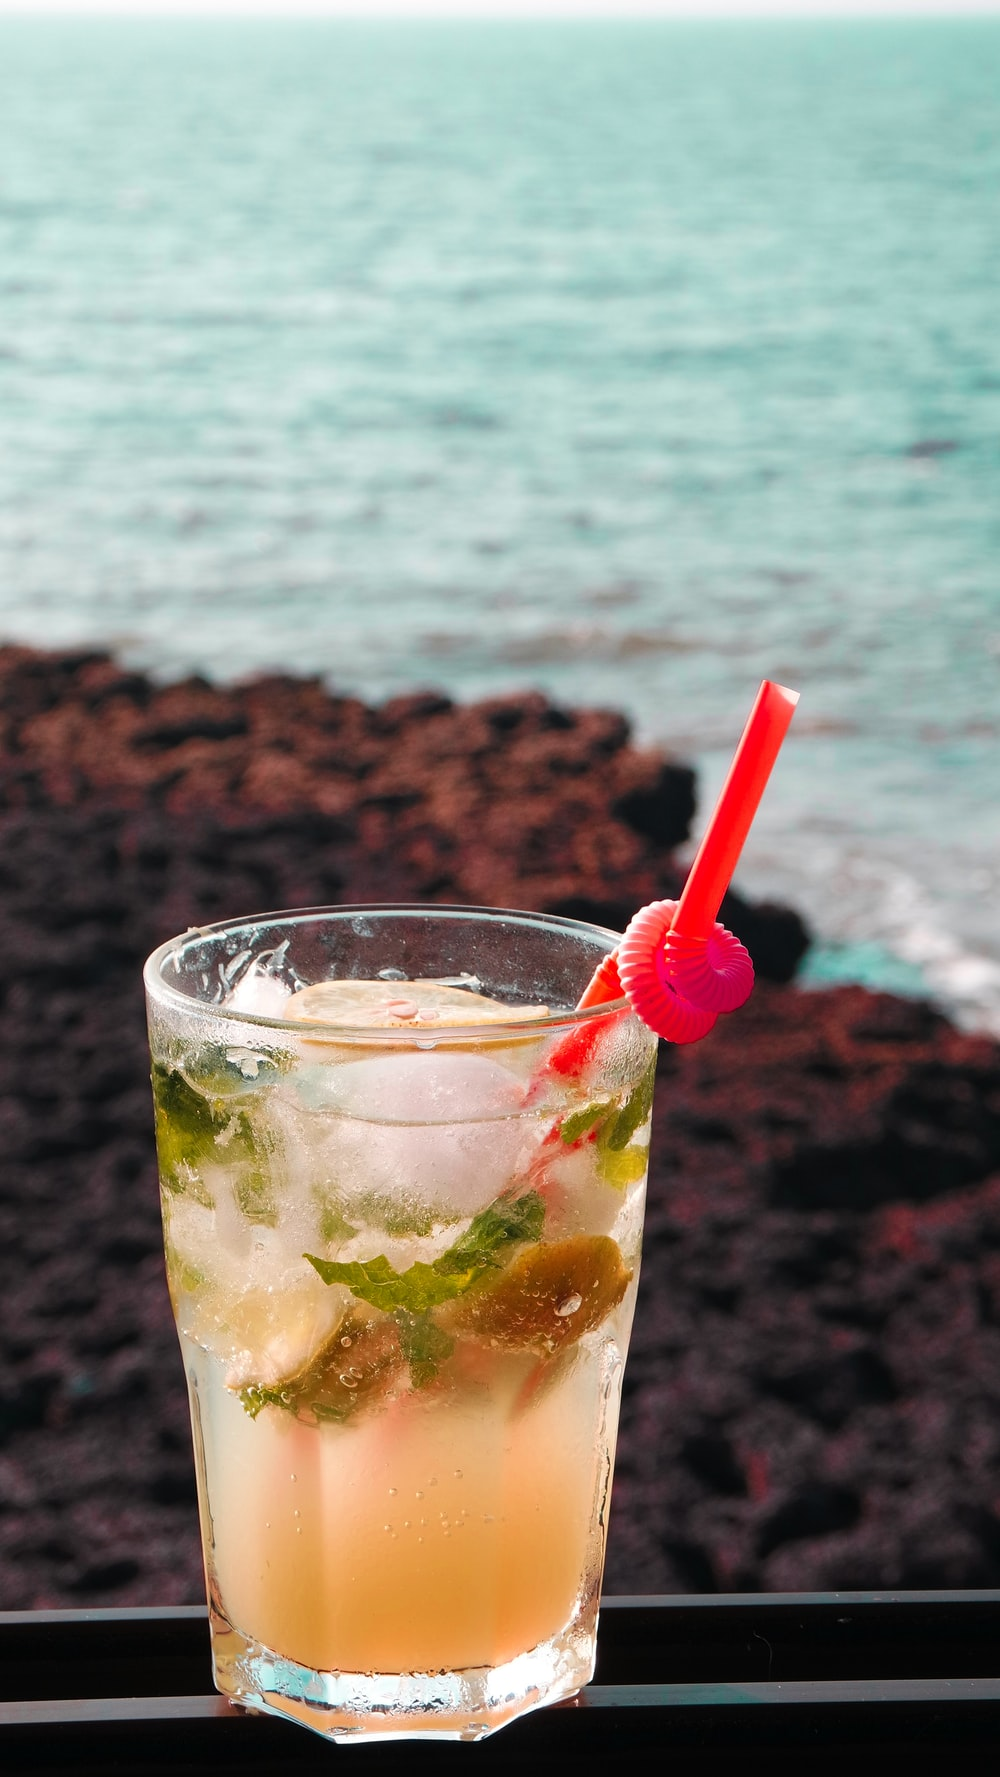 clear drinking glass with red straw